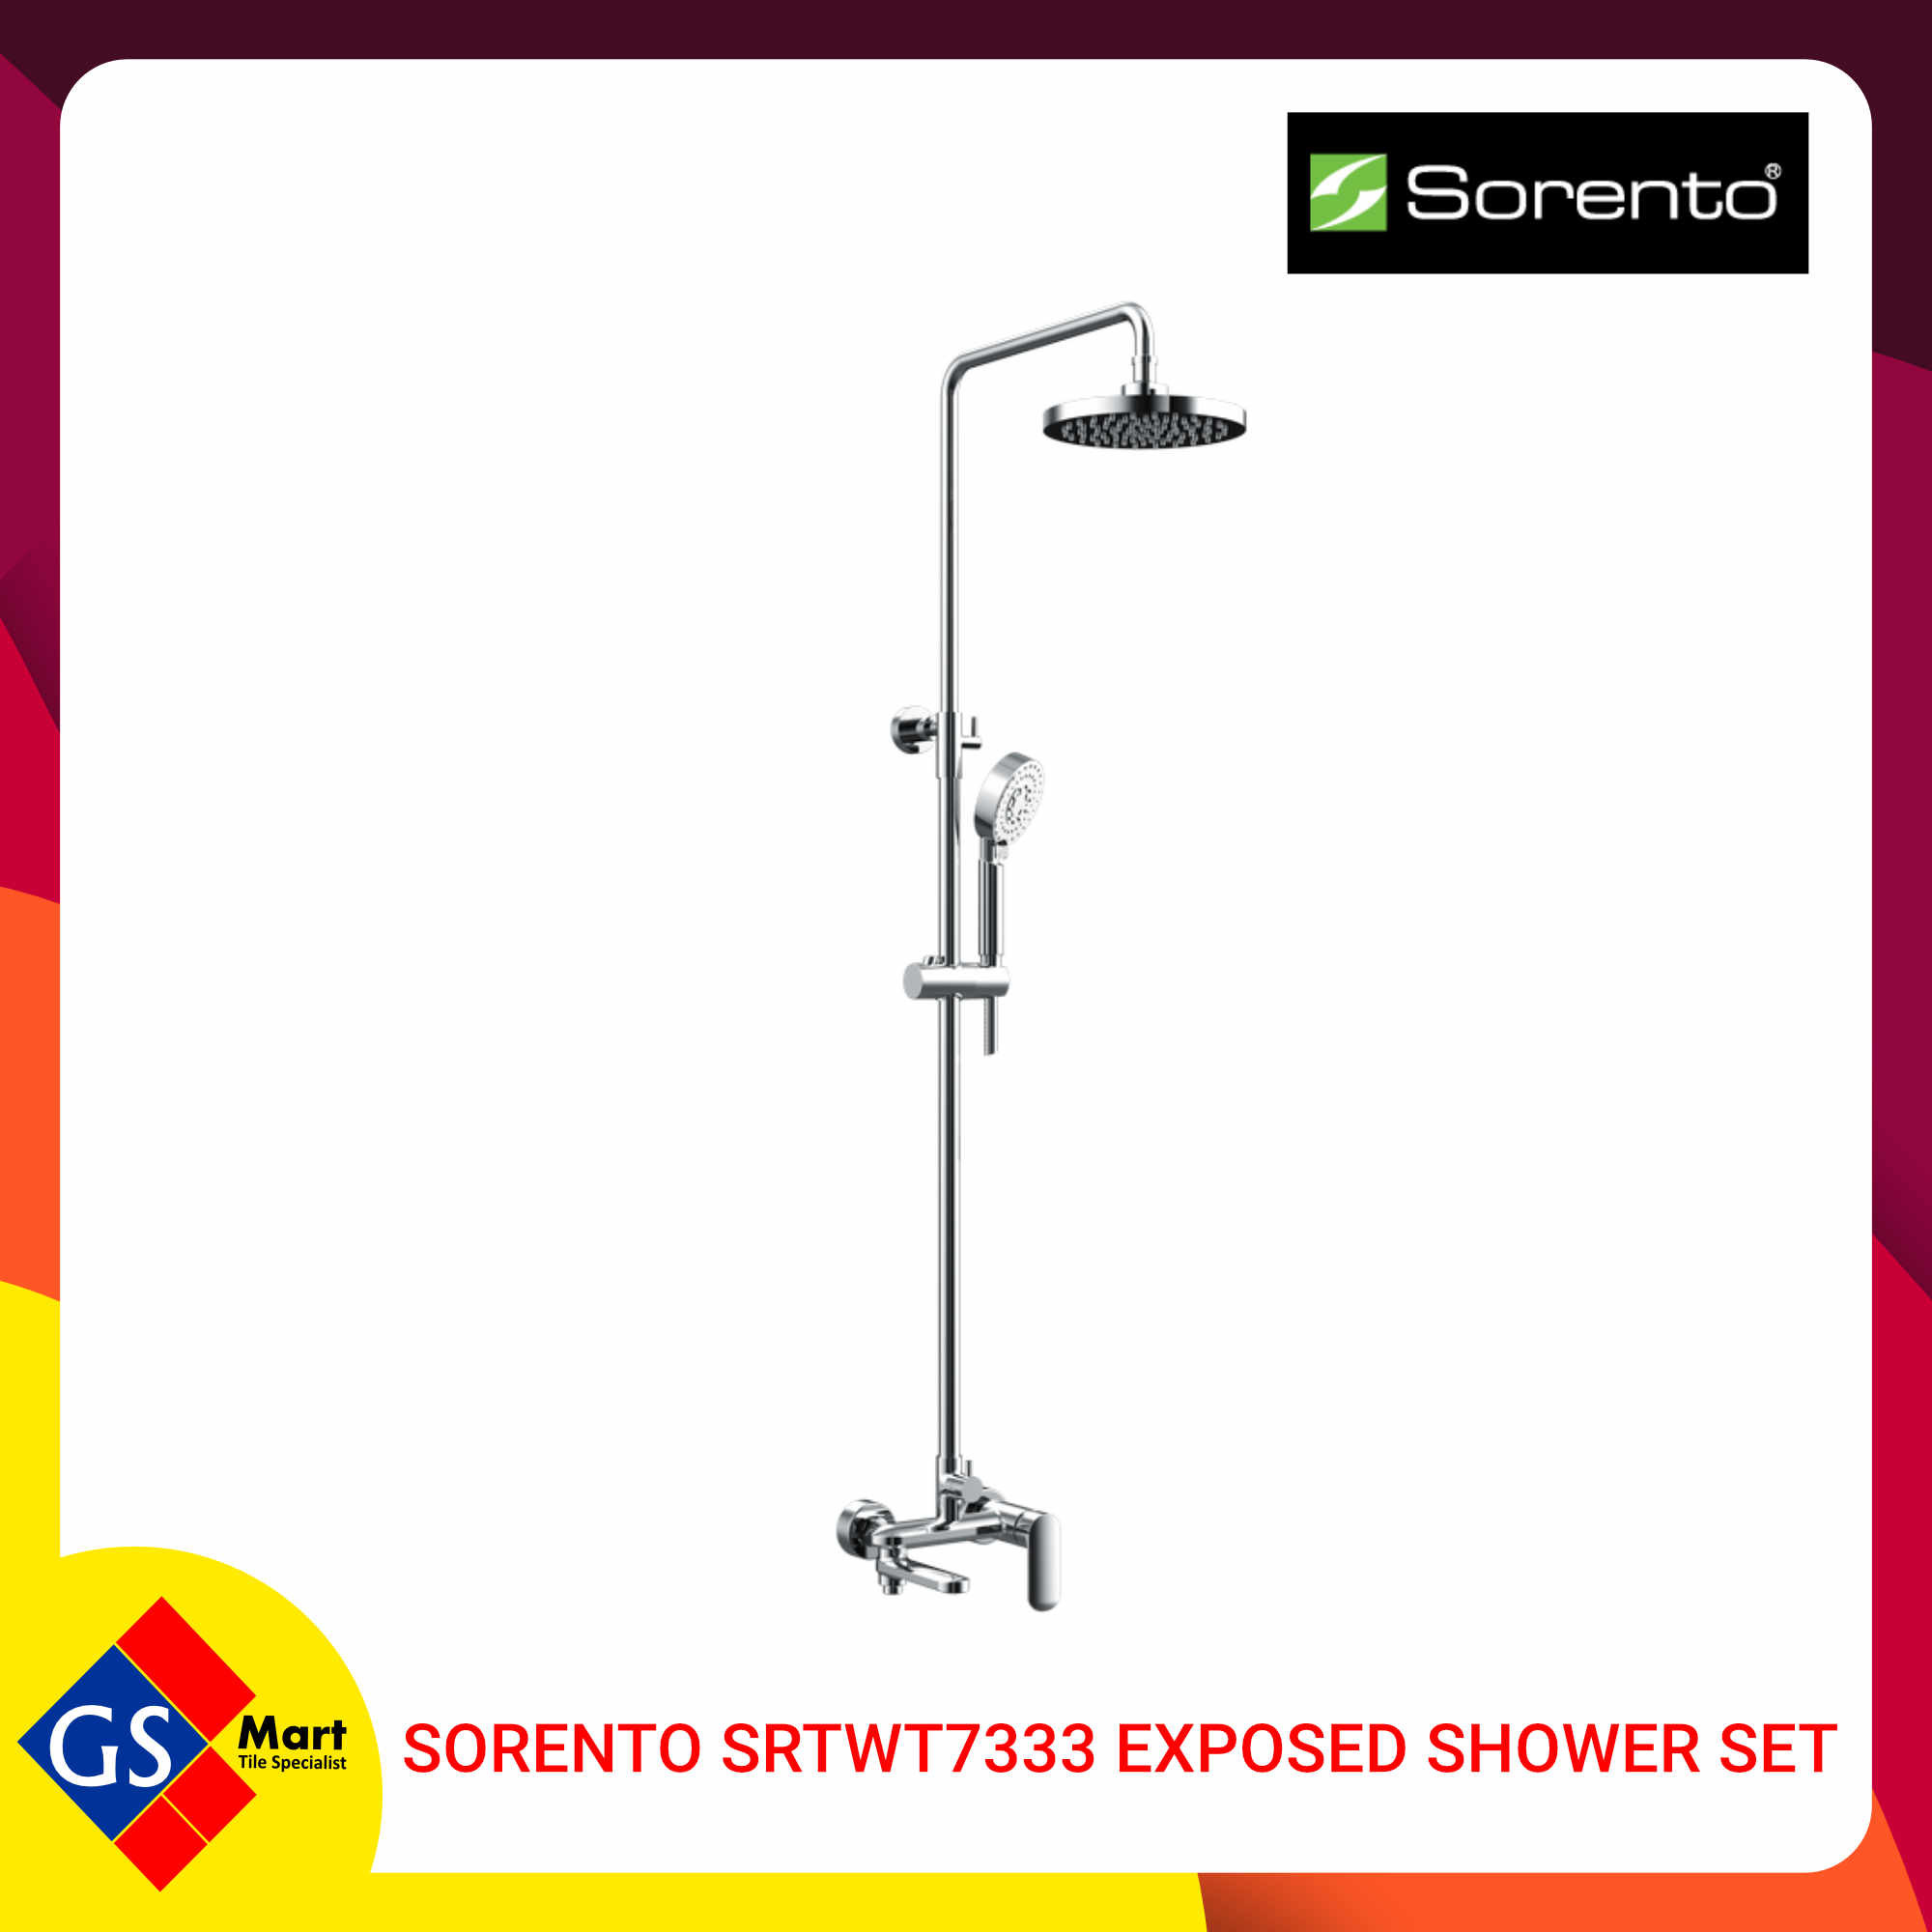 image of Sorento SRTWT7333 Exposed Shower Set